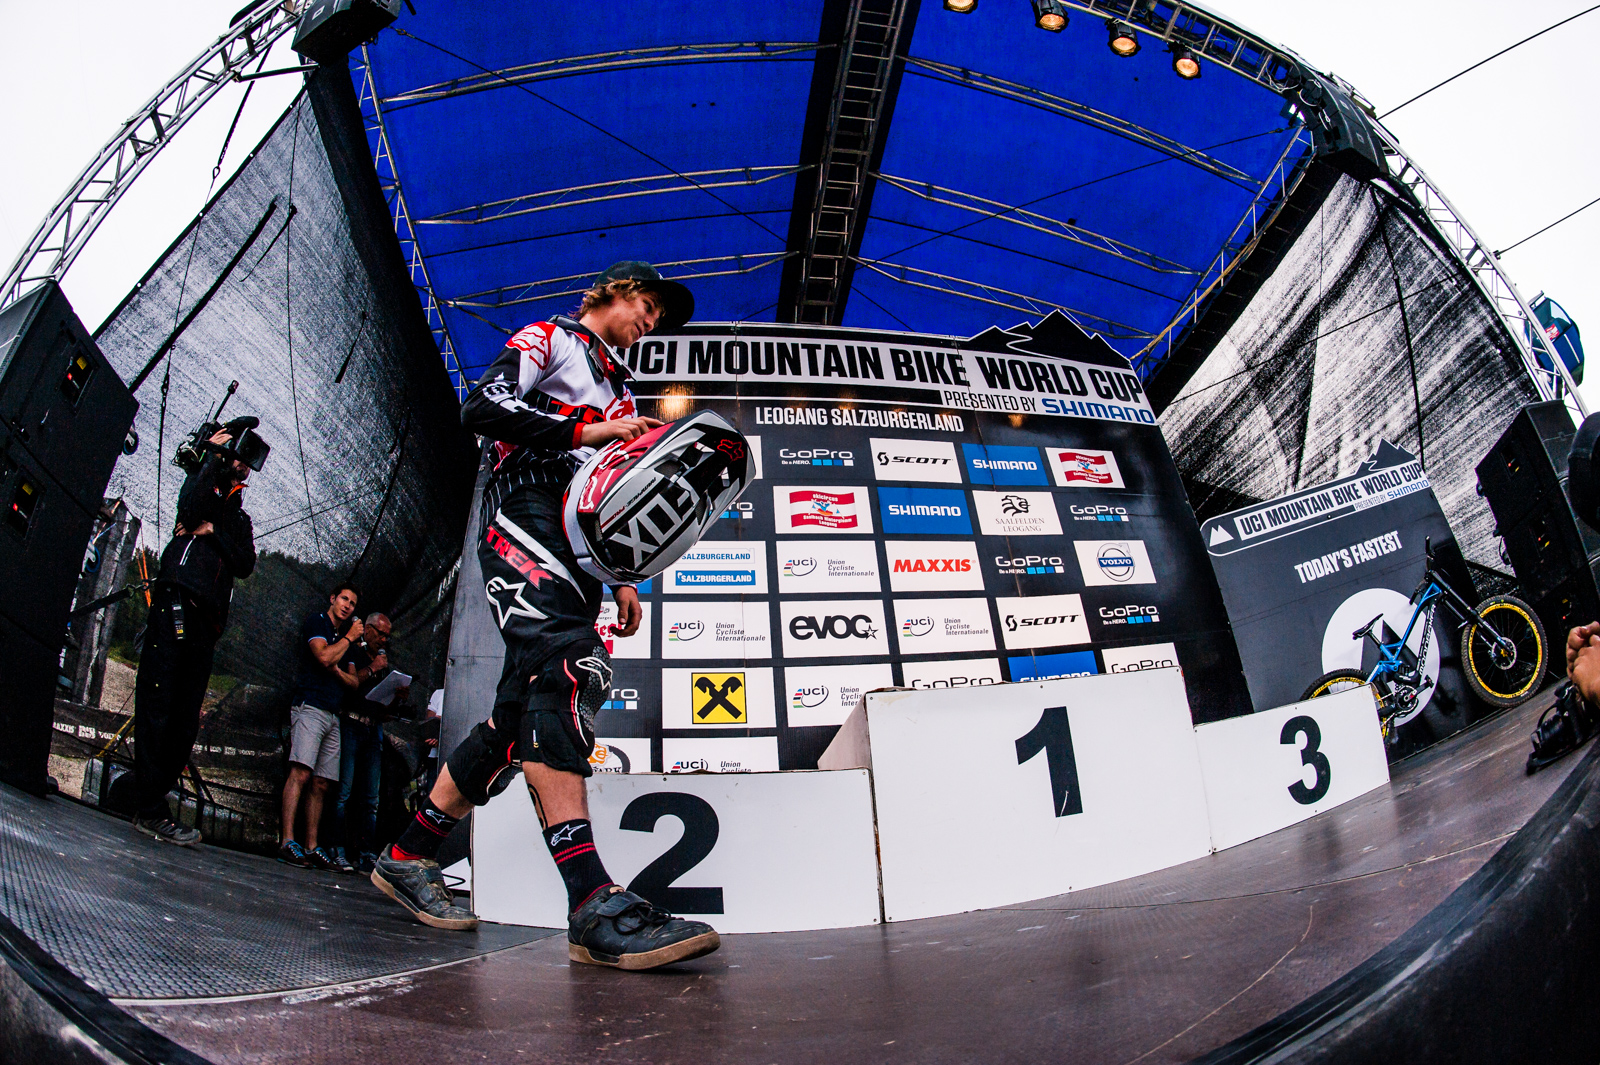 Perhaps outshined by Gwin's successes, Greenland too made the podium without a chain at Leogang.